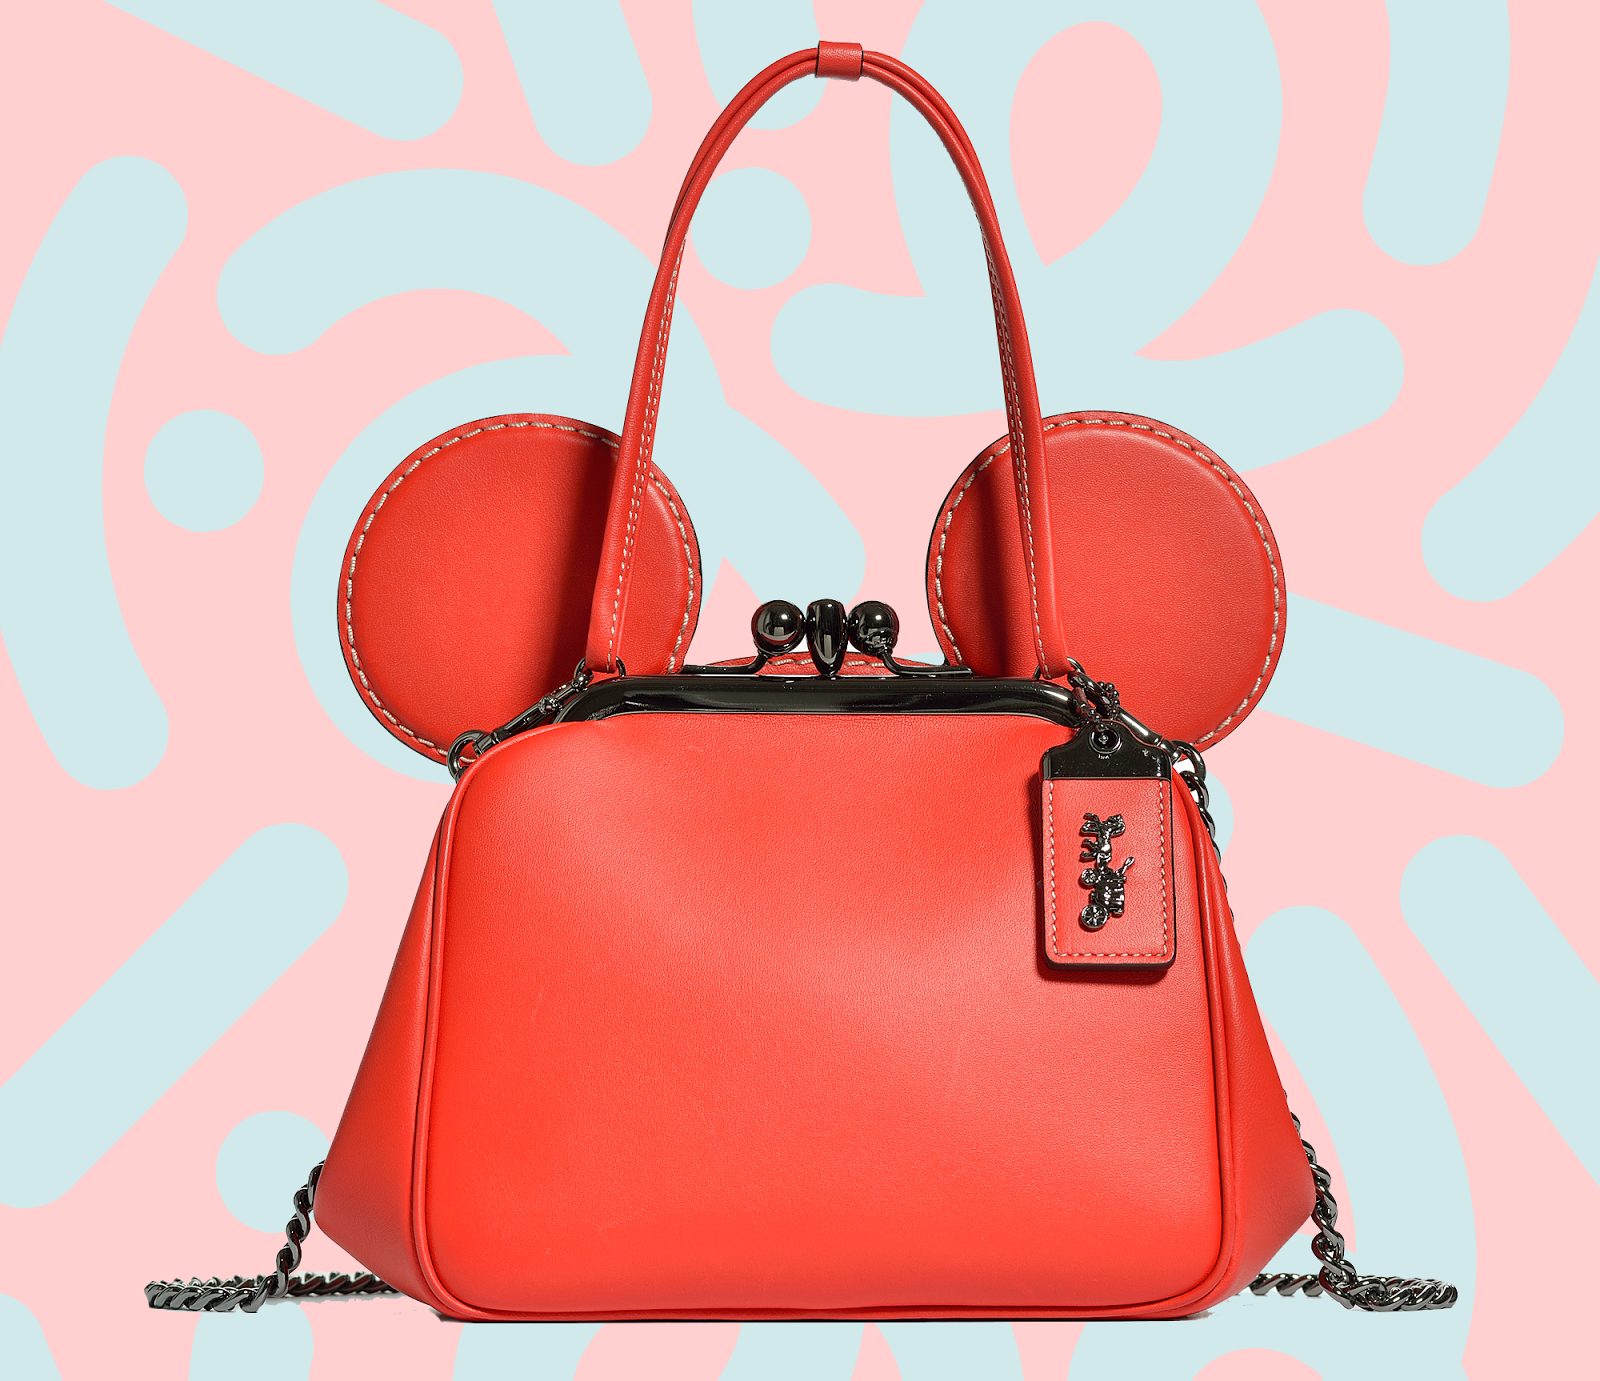 Coach debuts limited-edition Disney line collection